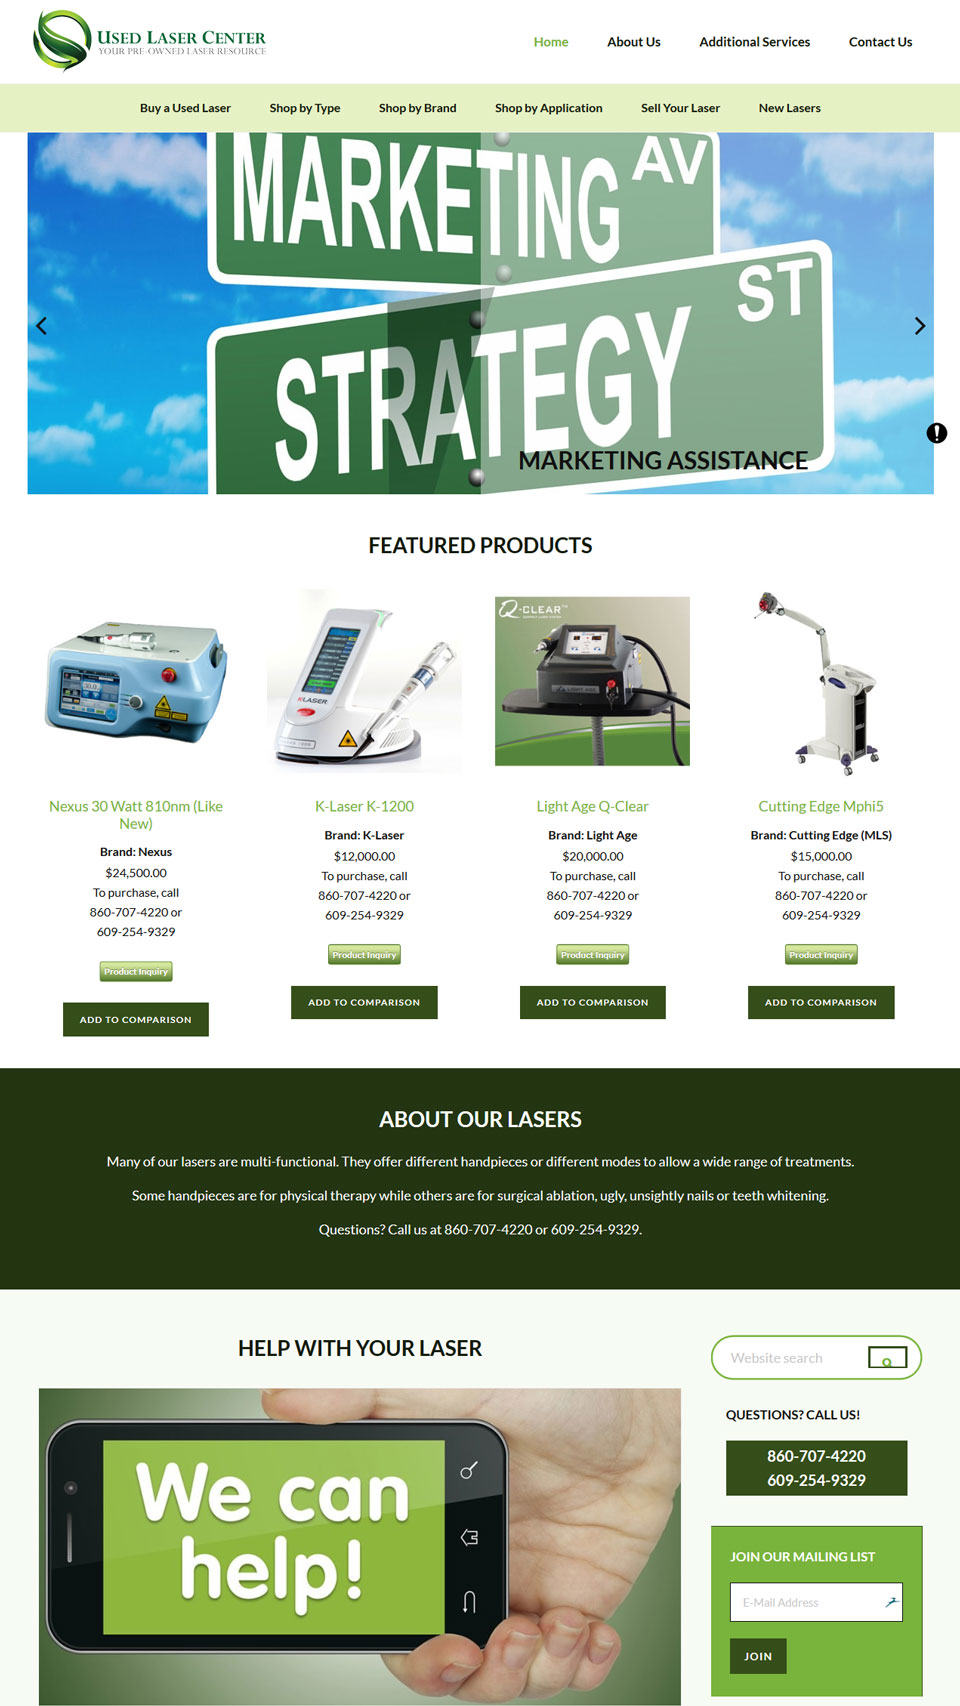 Used Laser Center Home Page